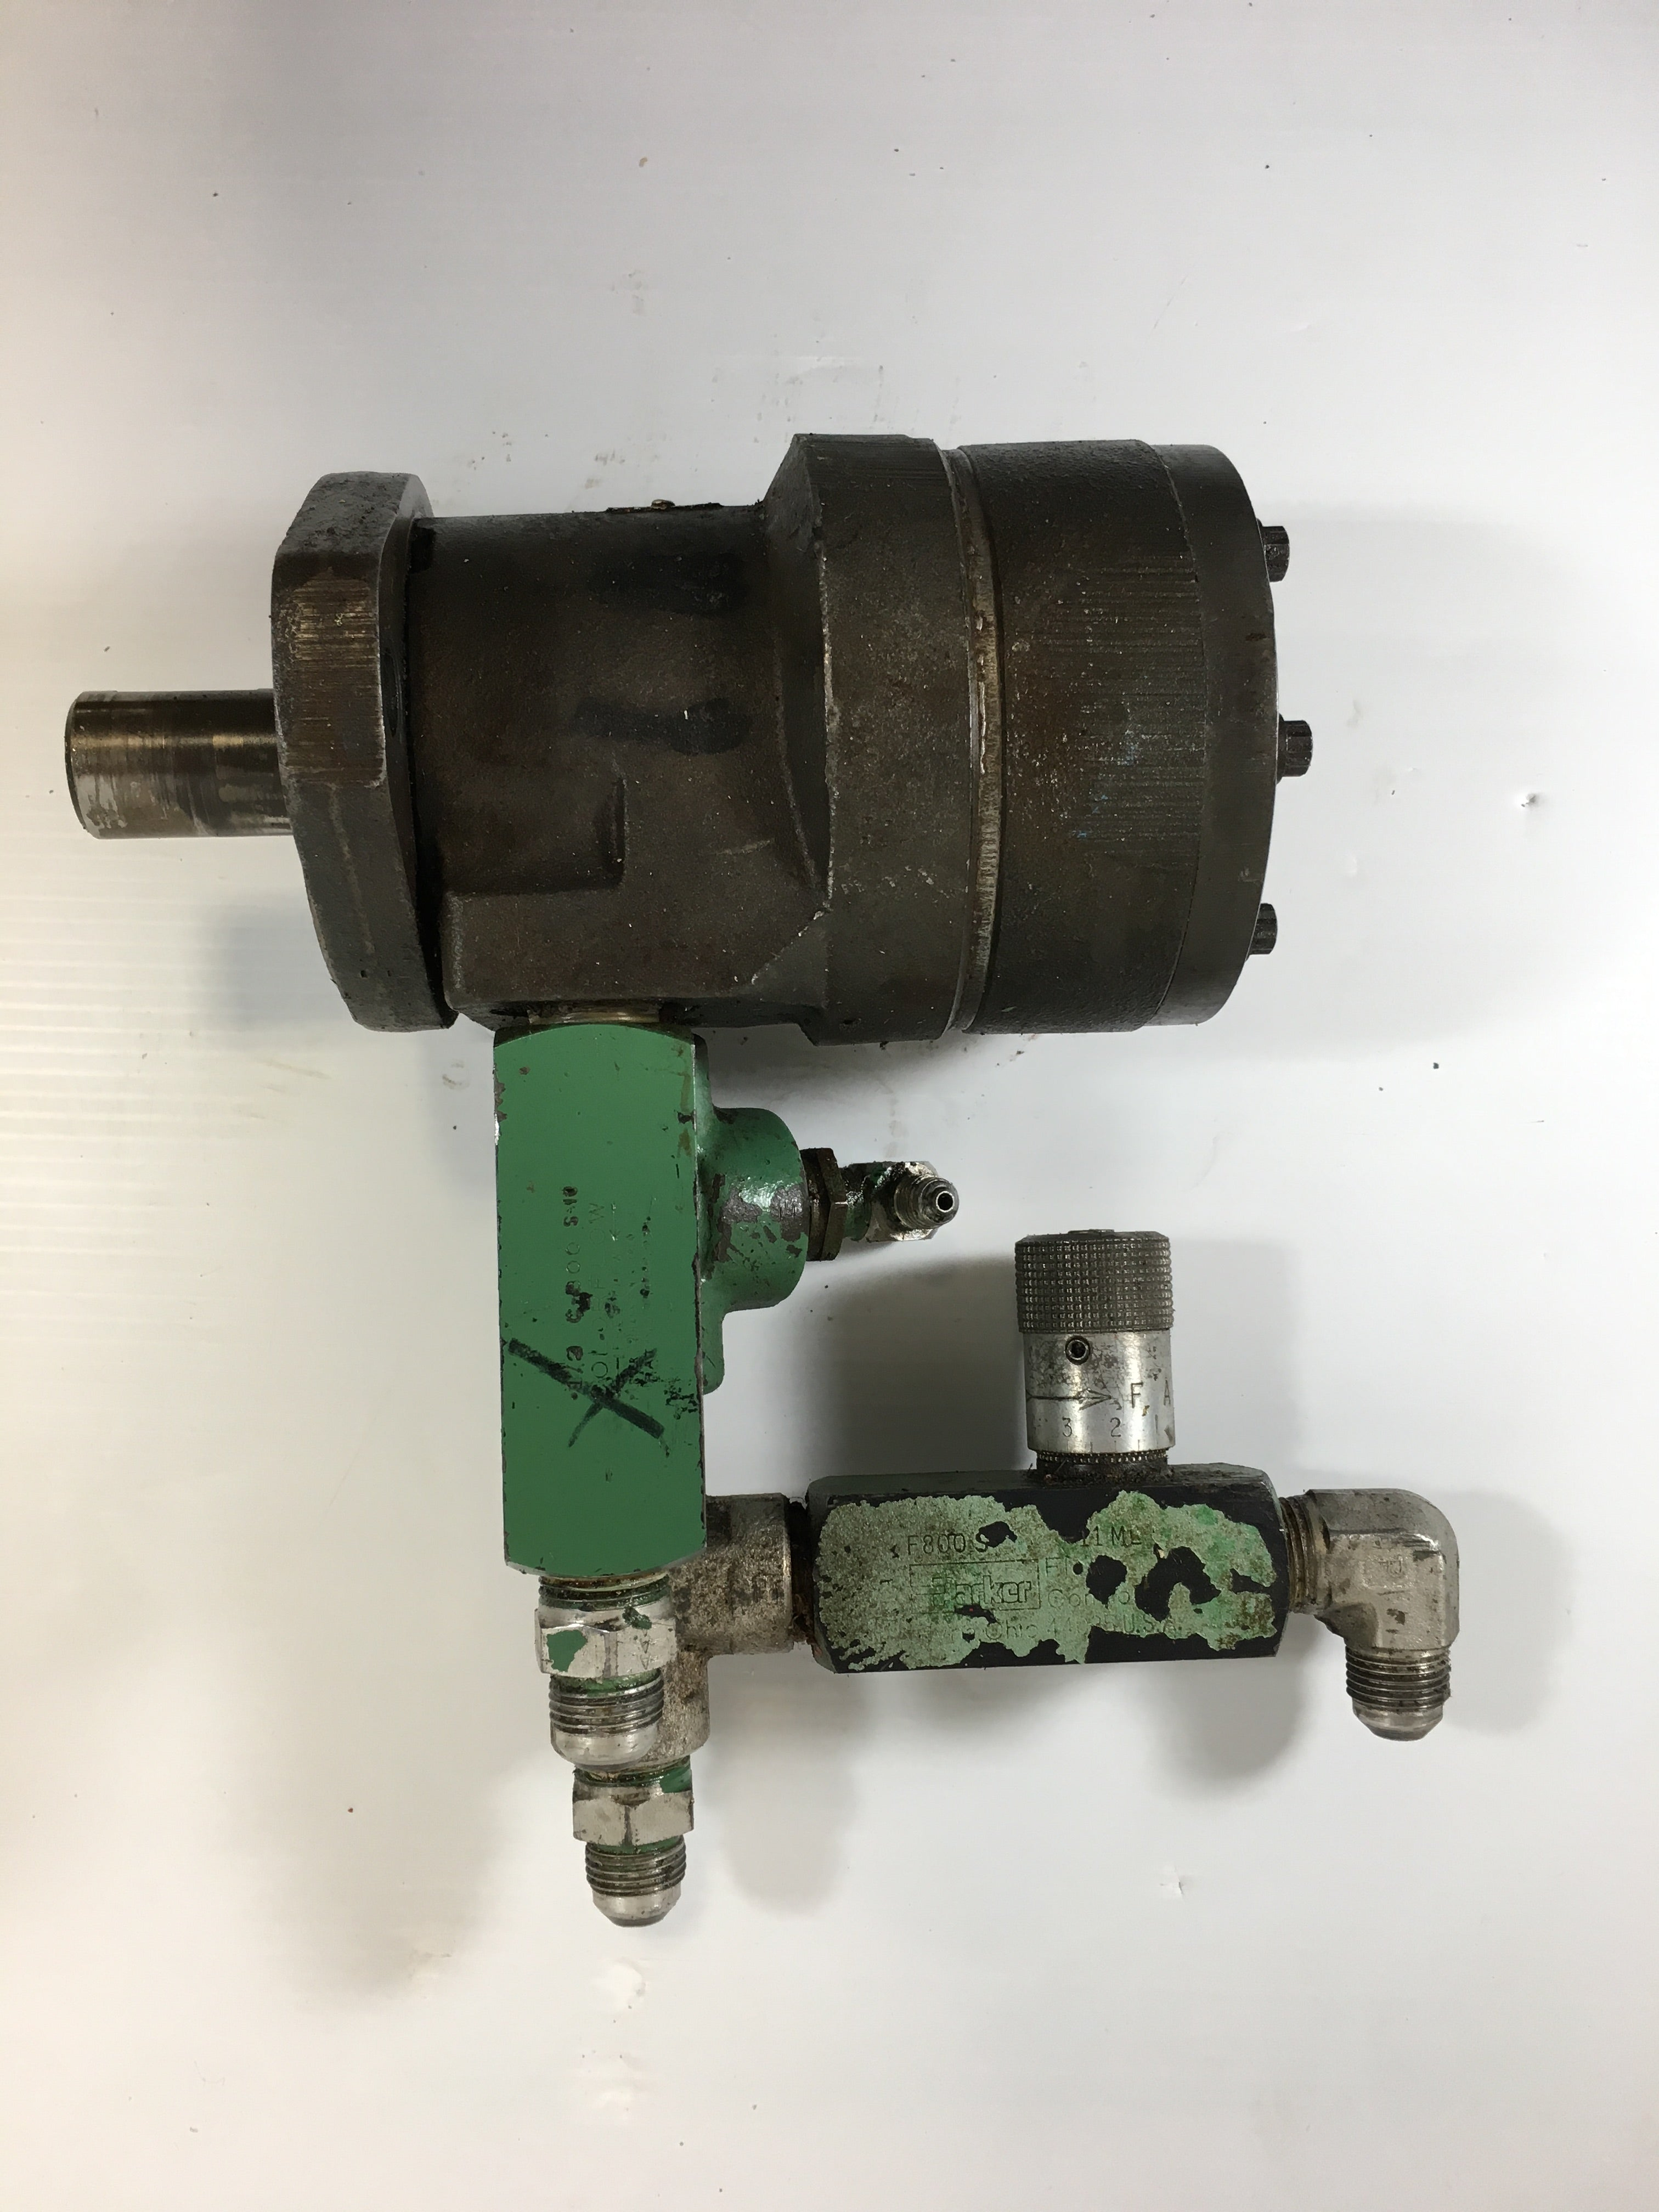 Eaton Char-Lynn Hydraulic Motor with Parker Control Valves 103 1030 008